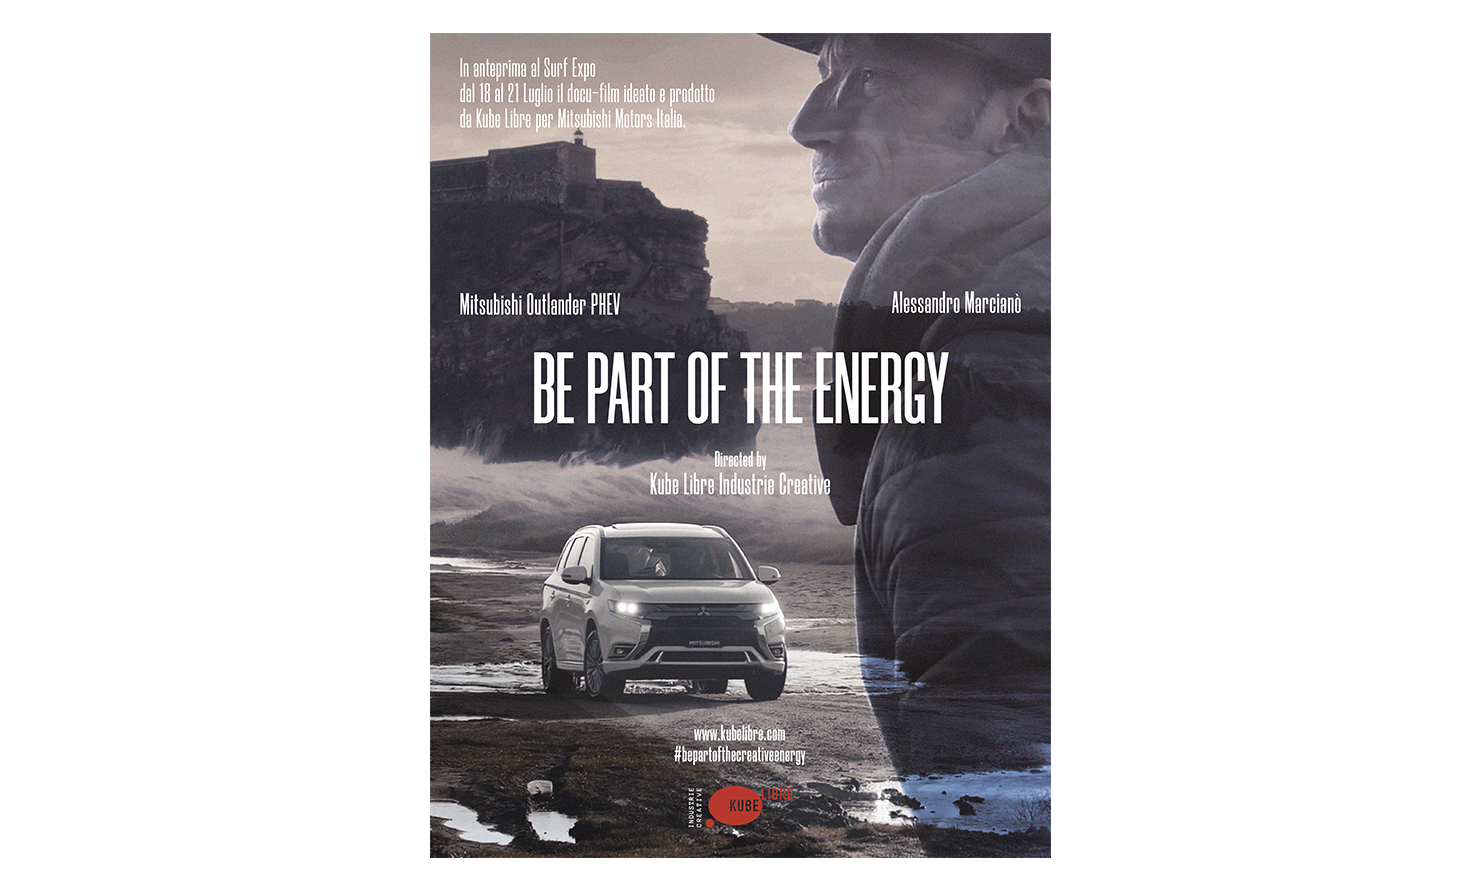 https://kubelibre.com/uploads/Slider-work-tutti-clienti/mitsubishi-outlander-phev-be-part-of-the-energy-nazaré-alessandro-marcianò-ads-kube-libre-luciano-nardi.jpg